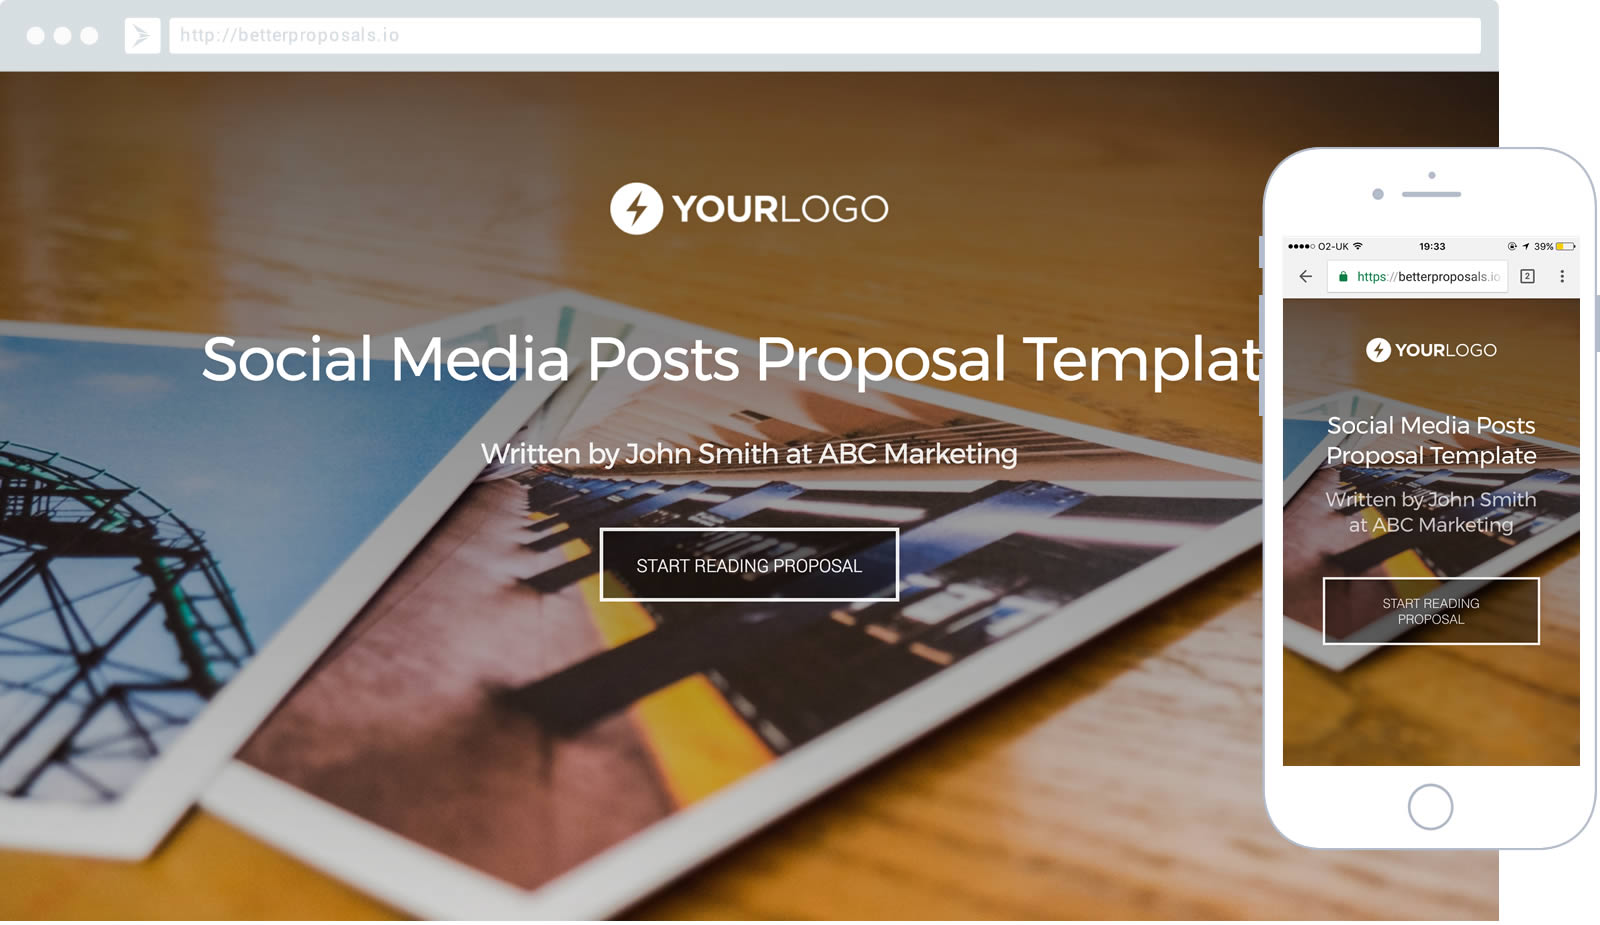 Social Media Posts Proposal Template Proposal template